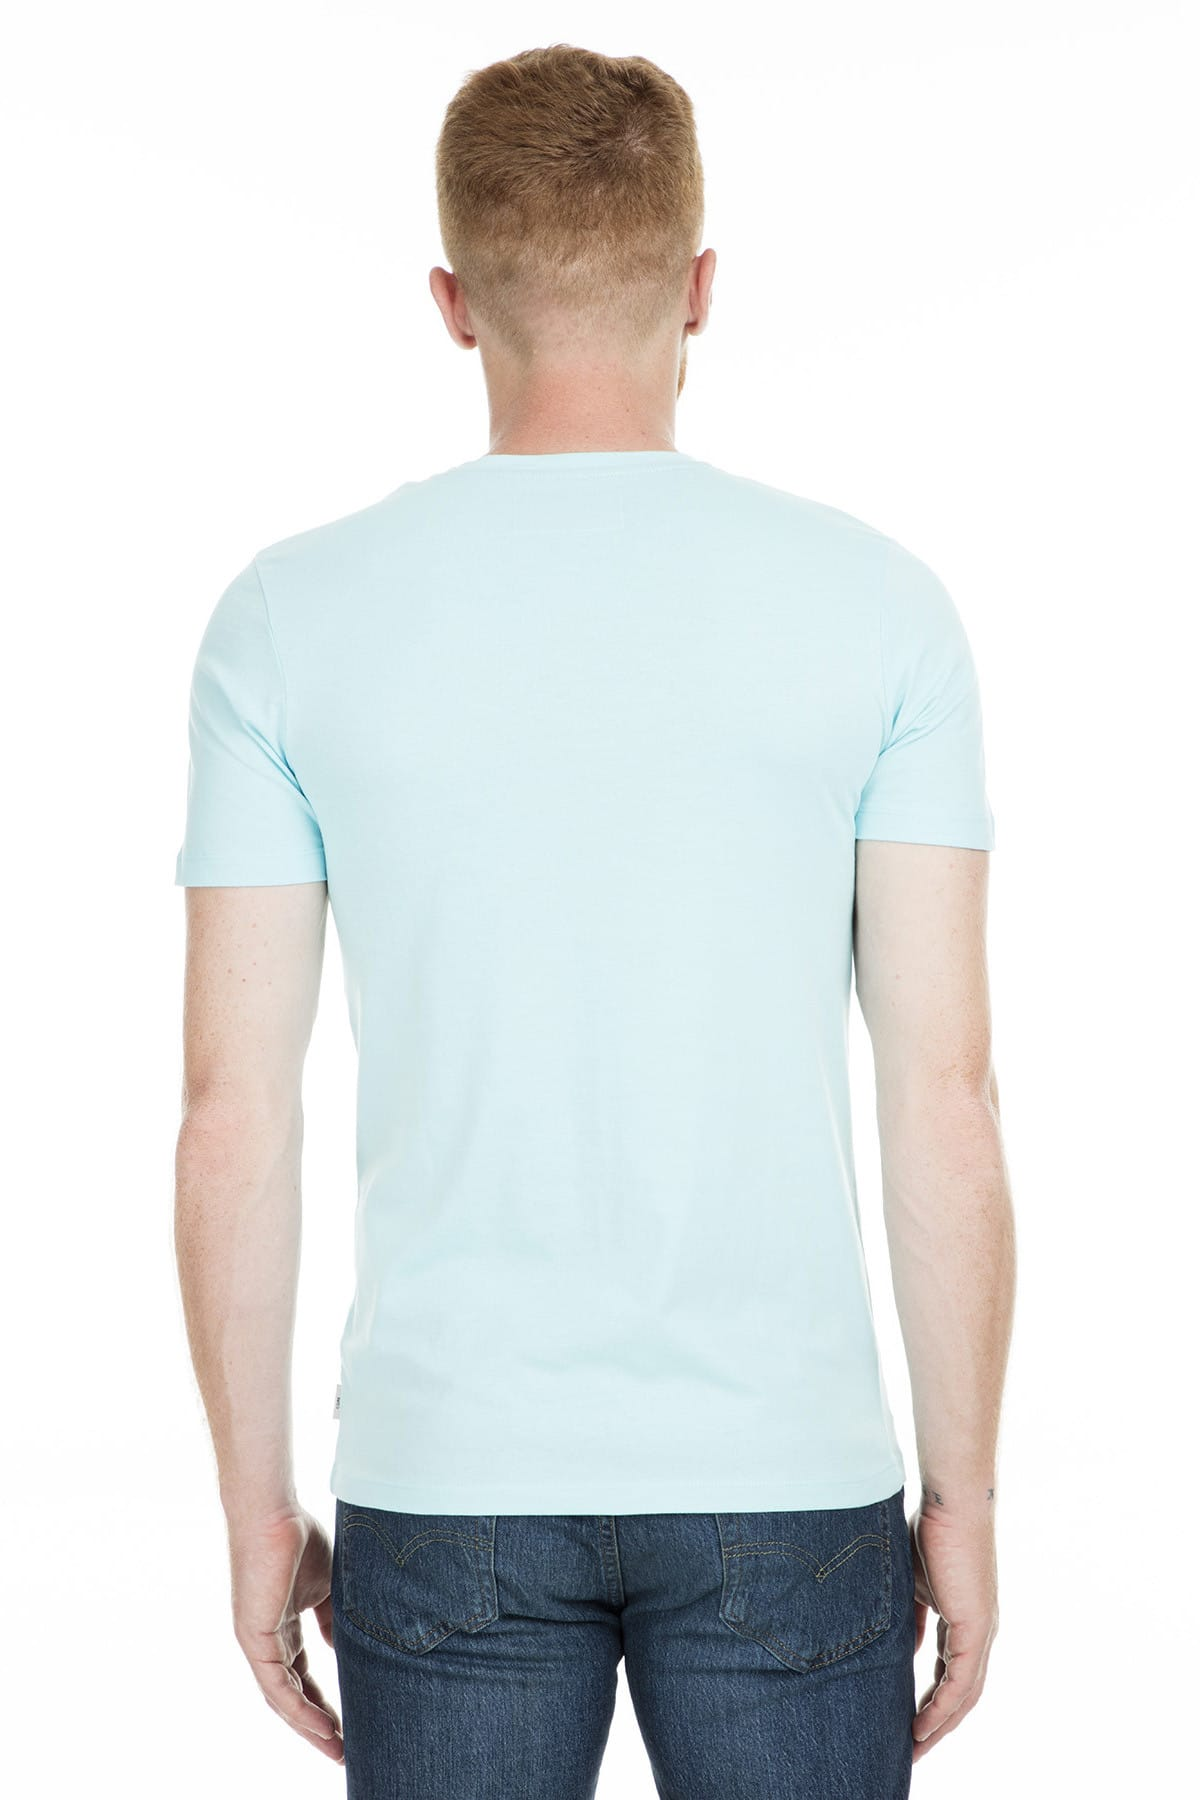 Jack & Jones T-Shirt - Stairs Core Tee Ss 12152308 2